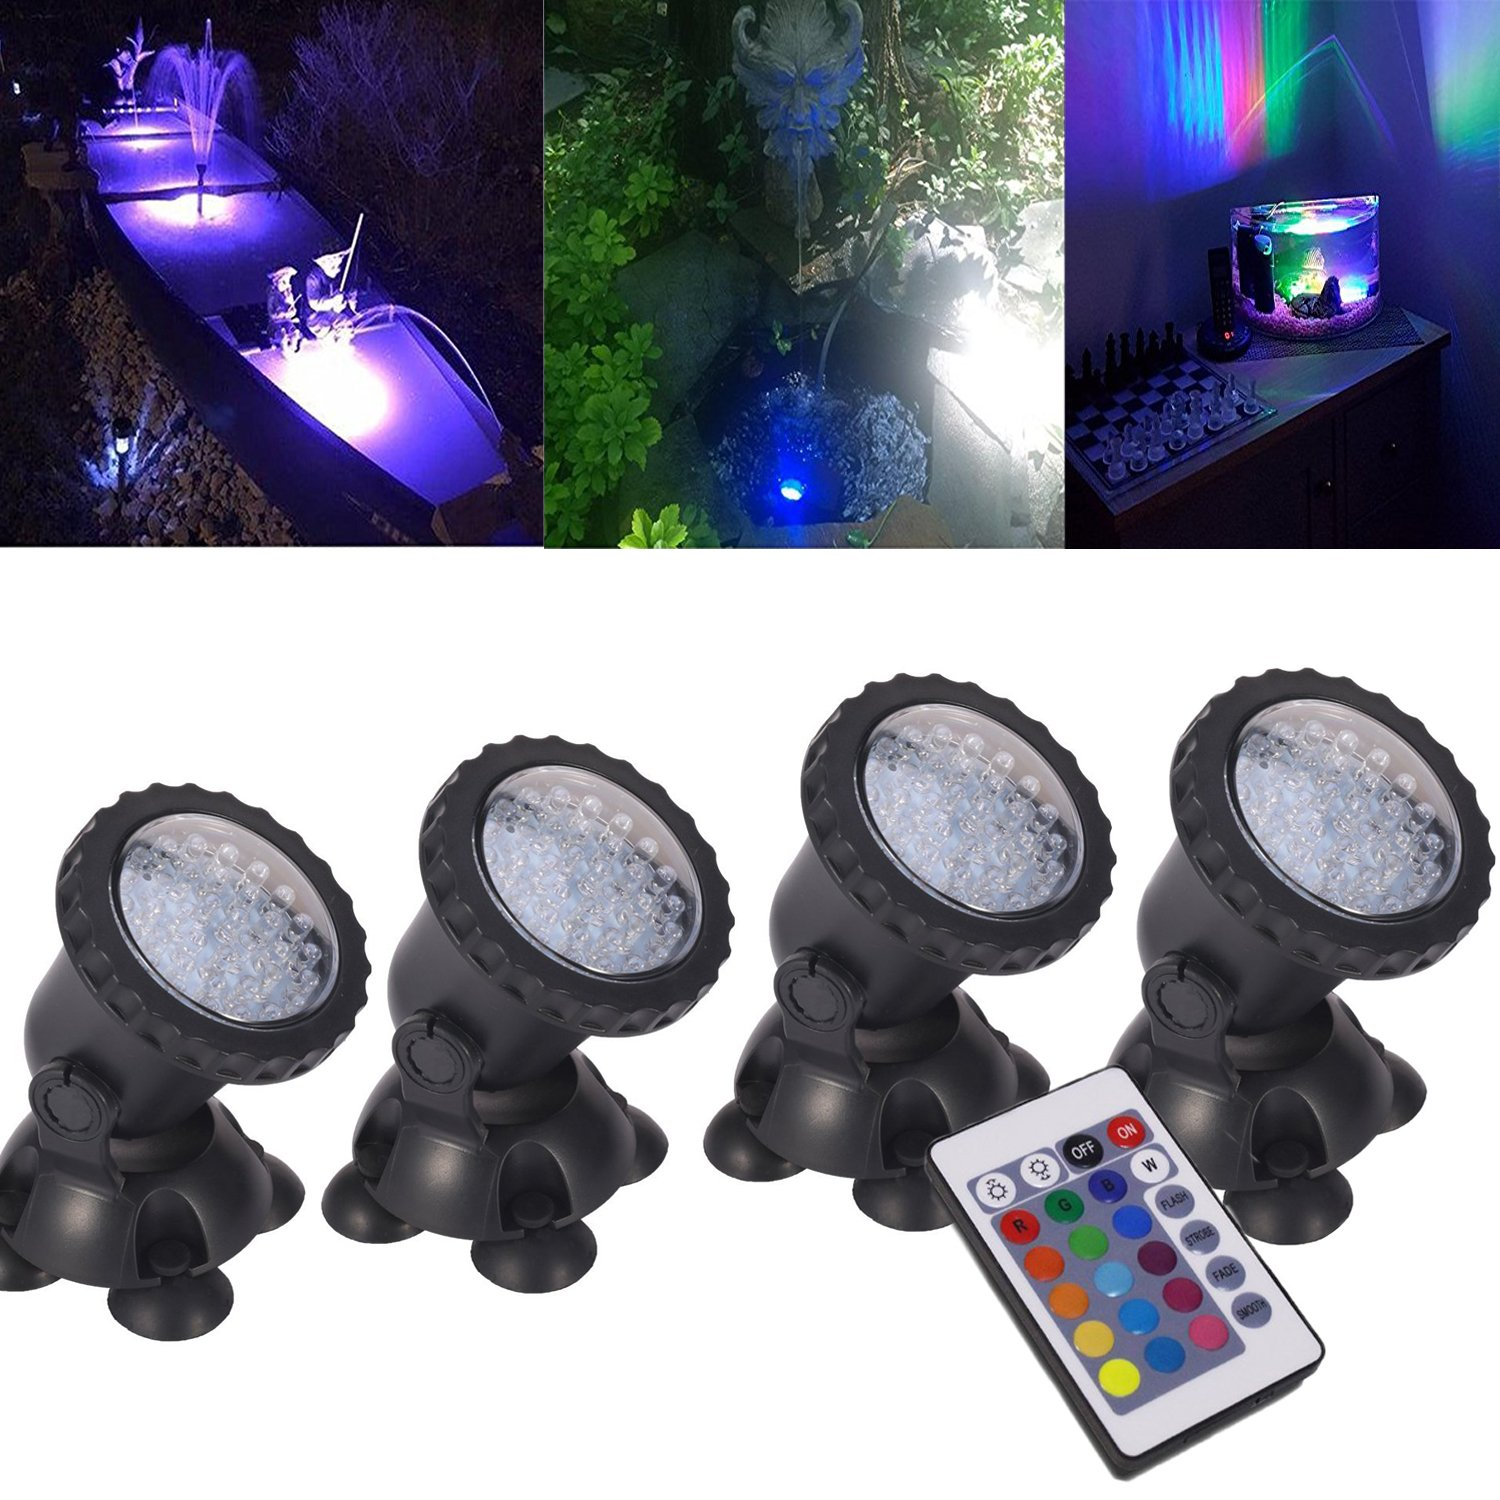 Pond Lights Remote Control Submersible Lamp [Set of 4] IP68 Underwater Aquarium Spotlight 36-LED Multi-color Decoration Landscape Lamp for Swimming Pool Fish Tank Fountain Water Rockery Grass Land by COVOART